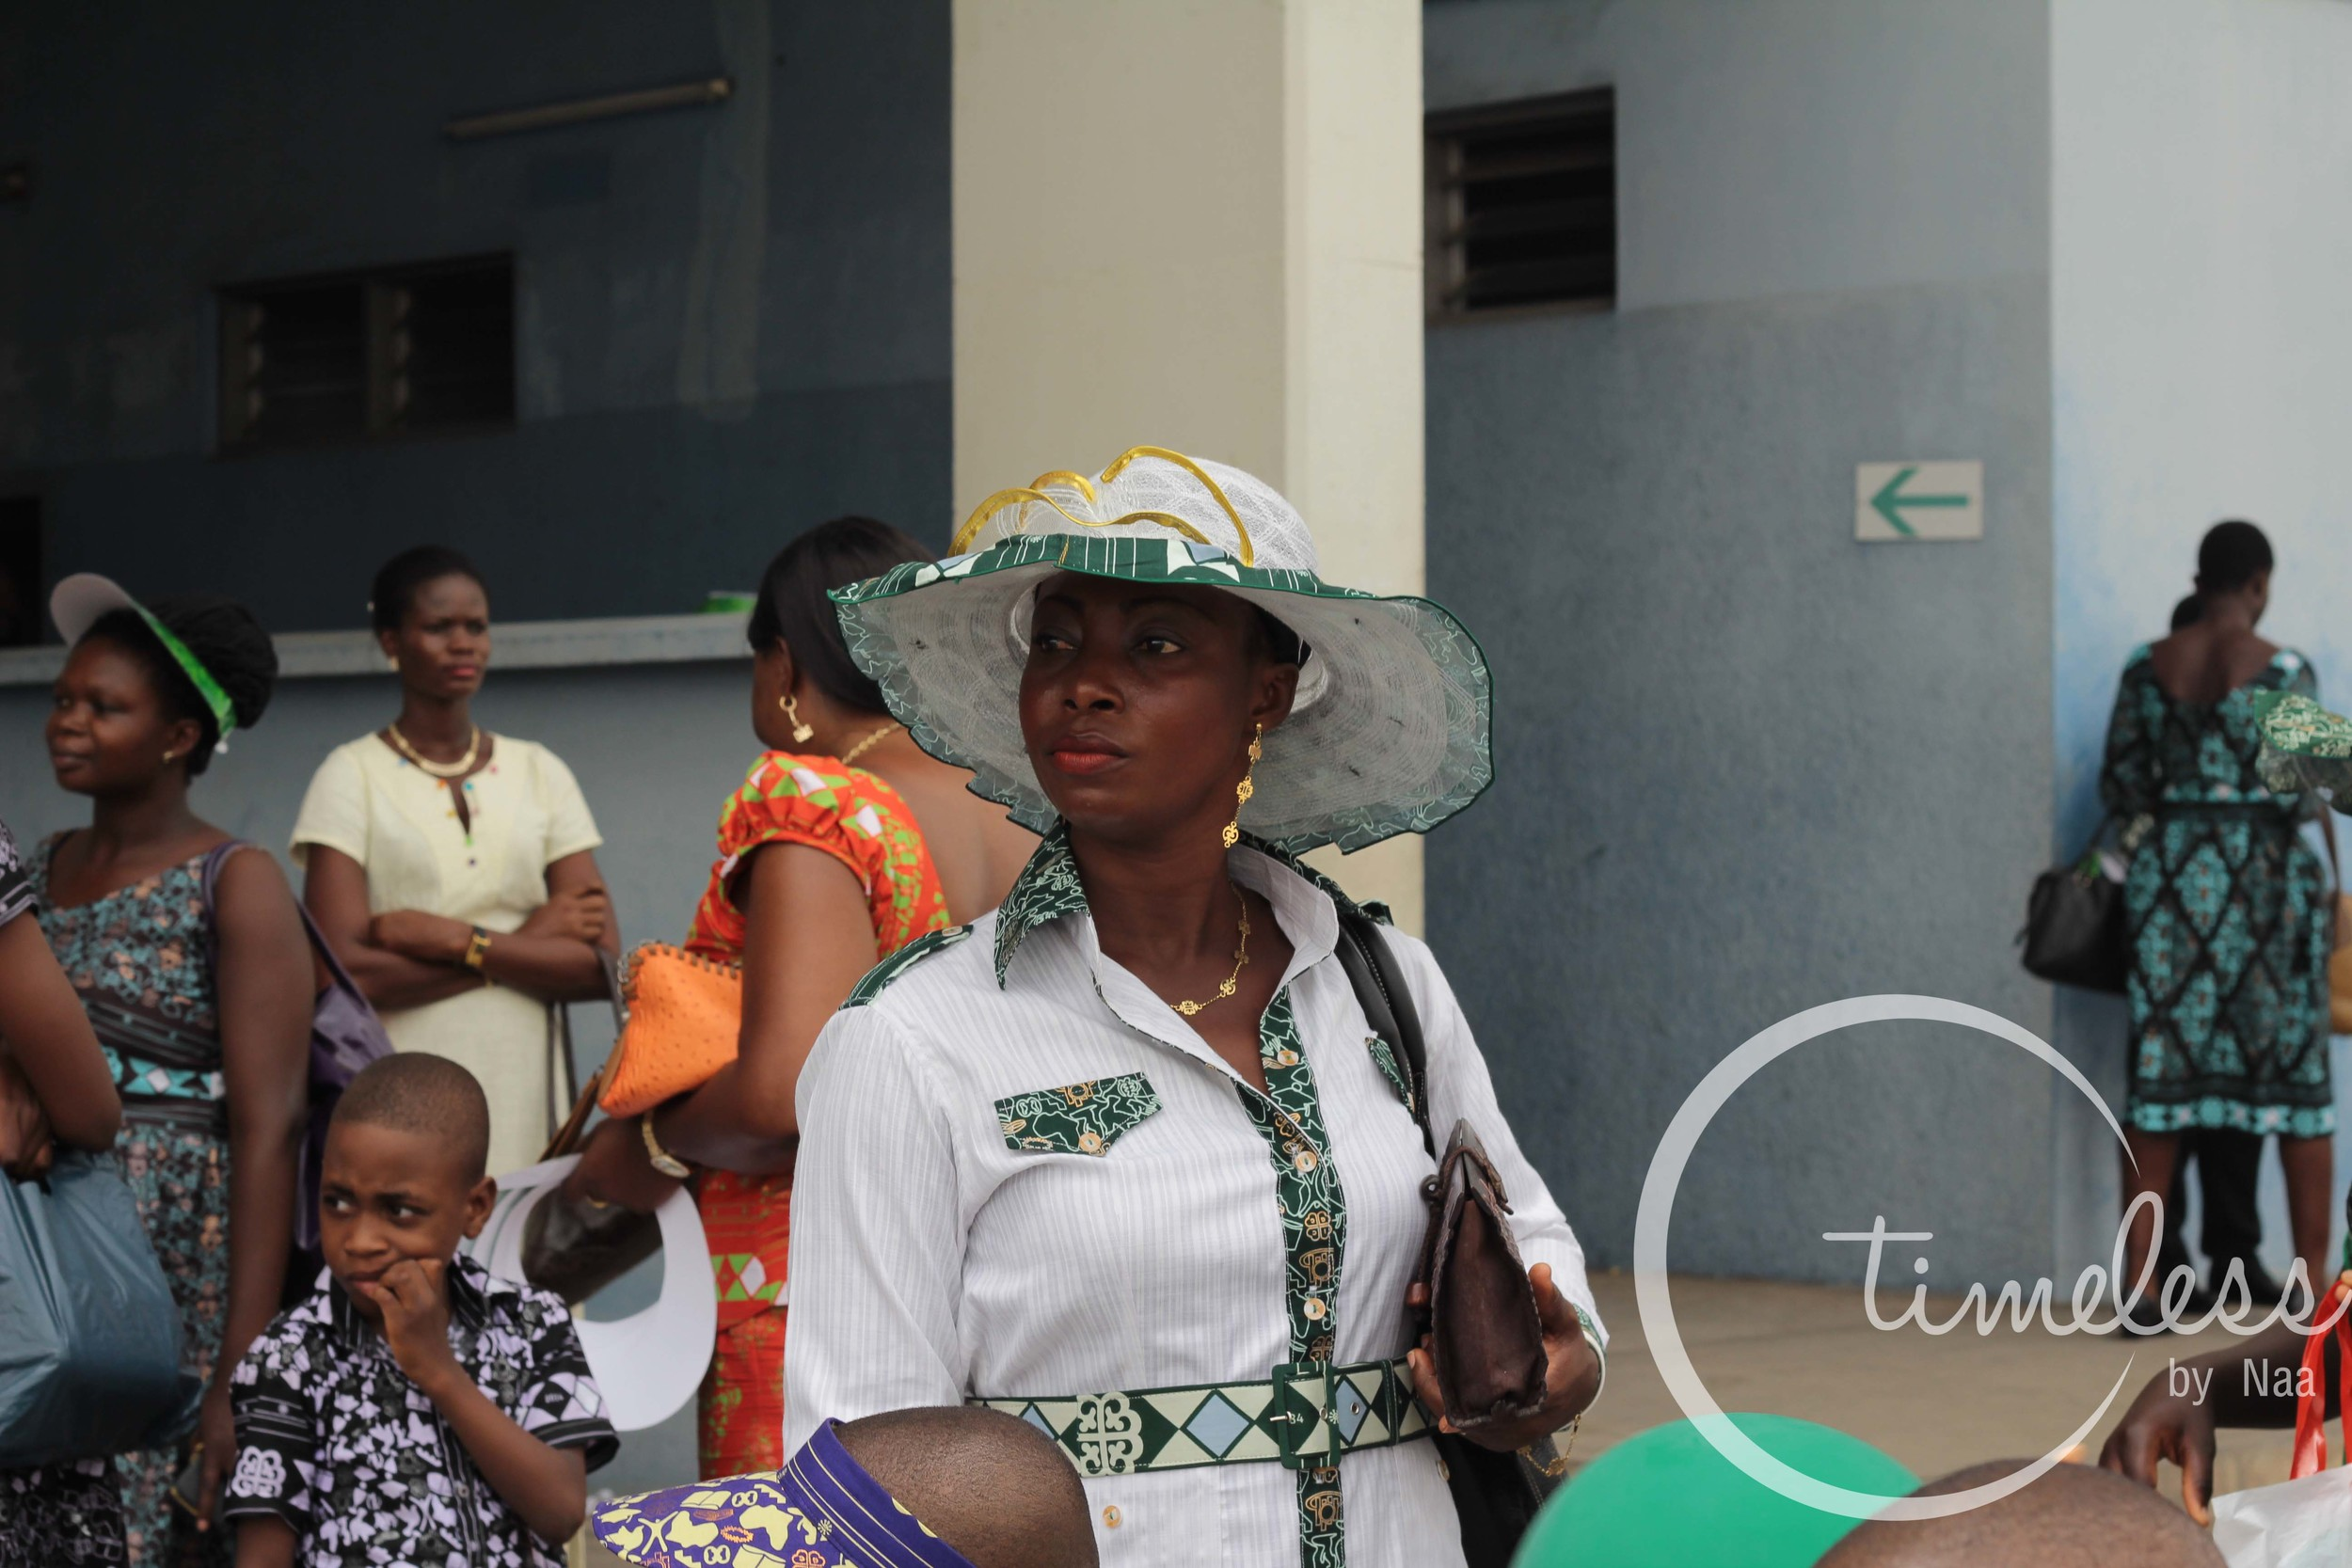 This lady was well adorned in a matching hat which I am guessing she made herself.